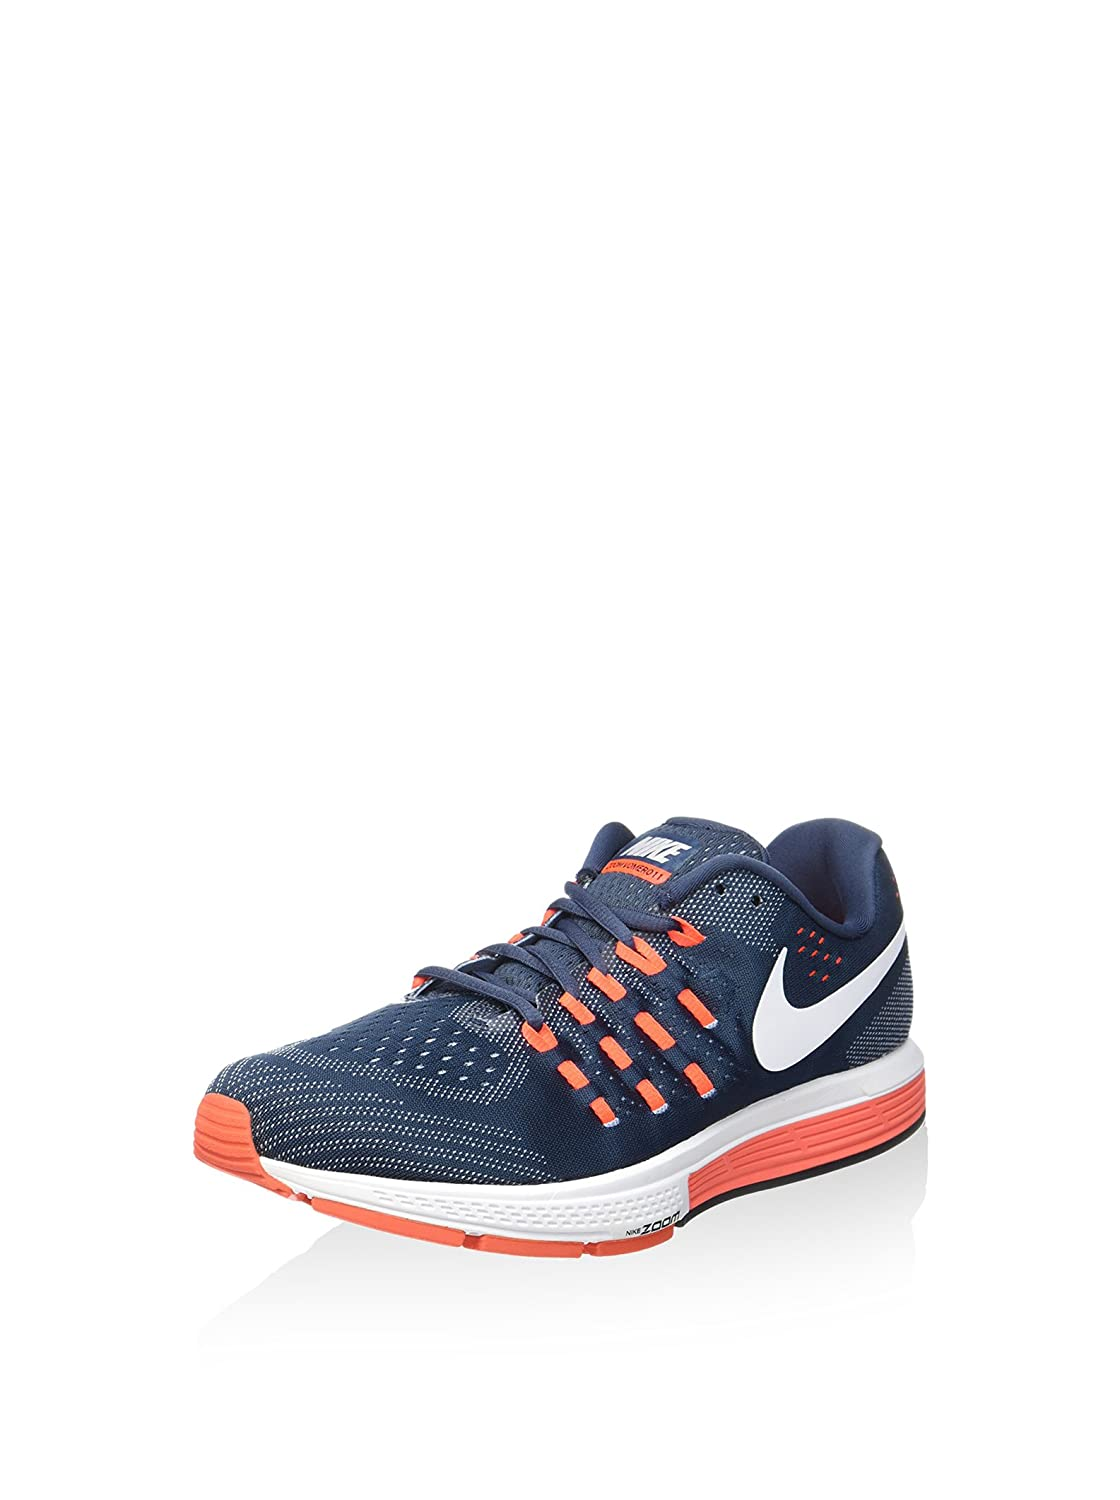 half off f9643 ef048 Nike Men s Air Vomero 11 Running Shoes 11 E Grey White Orange B01EB91O6O  Zoom nvpezy4637-Road Running